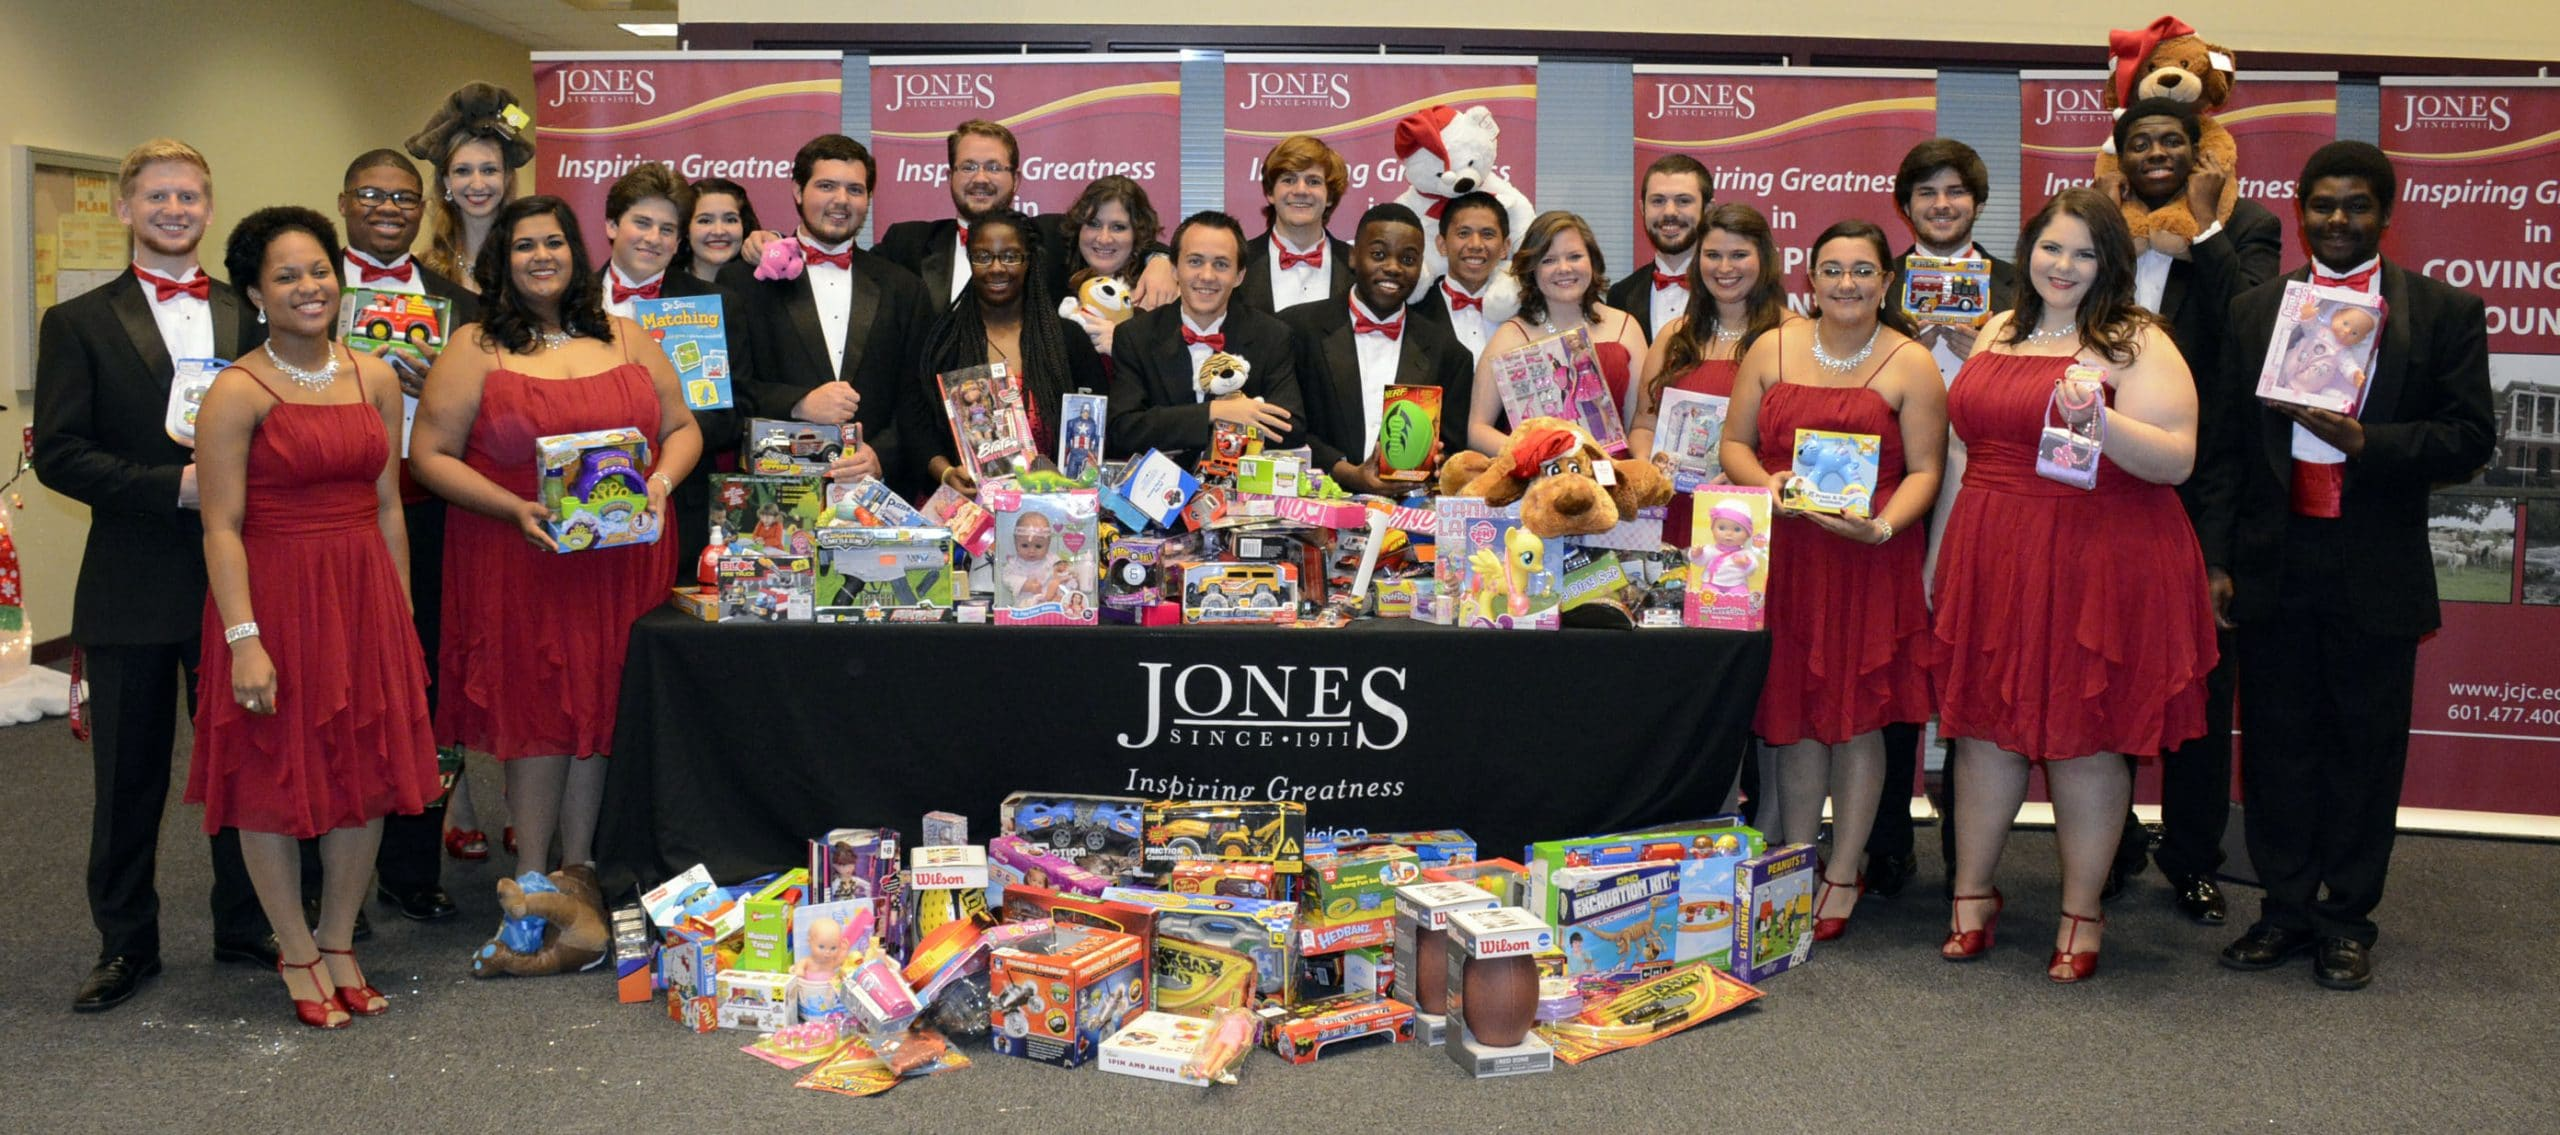 """JC Voices and JC Jazz students were proud of the number of toys received as admission to the group's concert, """"A Jingle Jazz Christmas.""""  The donated toys will all go to children in the Pine Belt enrolled in the """"Toys for Tots"""" program.  Pictured are some of the JCJC students from both performing groups and they are pictured left to right in the front row: Ashley Adams, Laurel; Rohini Malkani, Hattiesburg; Reagan Arnold, Collins; Doby Herring, Waynesboro; Sophia Daniel, Hattiesburg; Jordan Sanders, Ellisville; Karsten Smith, Hattiesburg; Ashley Mills, Waynesboro; Morgan Smith, Laurel; Elizabeth Hensarling, Patterson, CA and Roxie Hudgins, Collins.  Pictured in the back row, left to right:Caleb Guilbeau, Ellisville; Shaquille Shelwood, Ellisville; Lauryn Easley, Laurel; Savannah Scafide, Long Beach; Harlan Mapp, Hattiesburg; Leah Dueitt, Neely; Steve Jones, Starkville; Sam Cruz, Pensacola, FL; Daniel Coats, Taylorsville; Cale Green, Laurel; David Walker, Laurel and Gary Young, Ellisville (between the two rows)."""